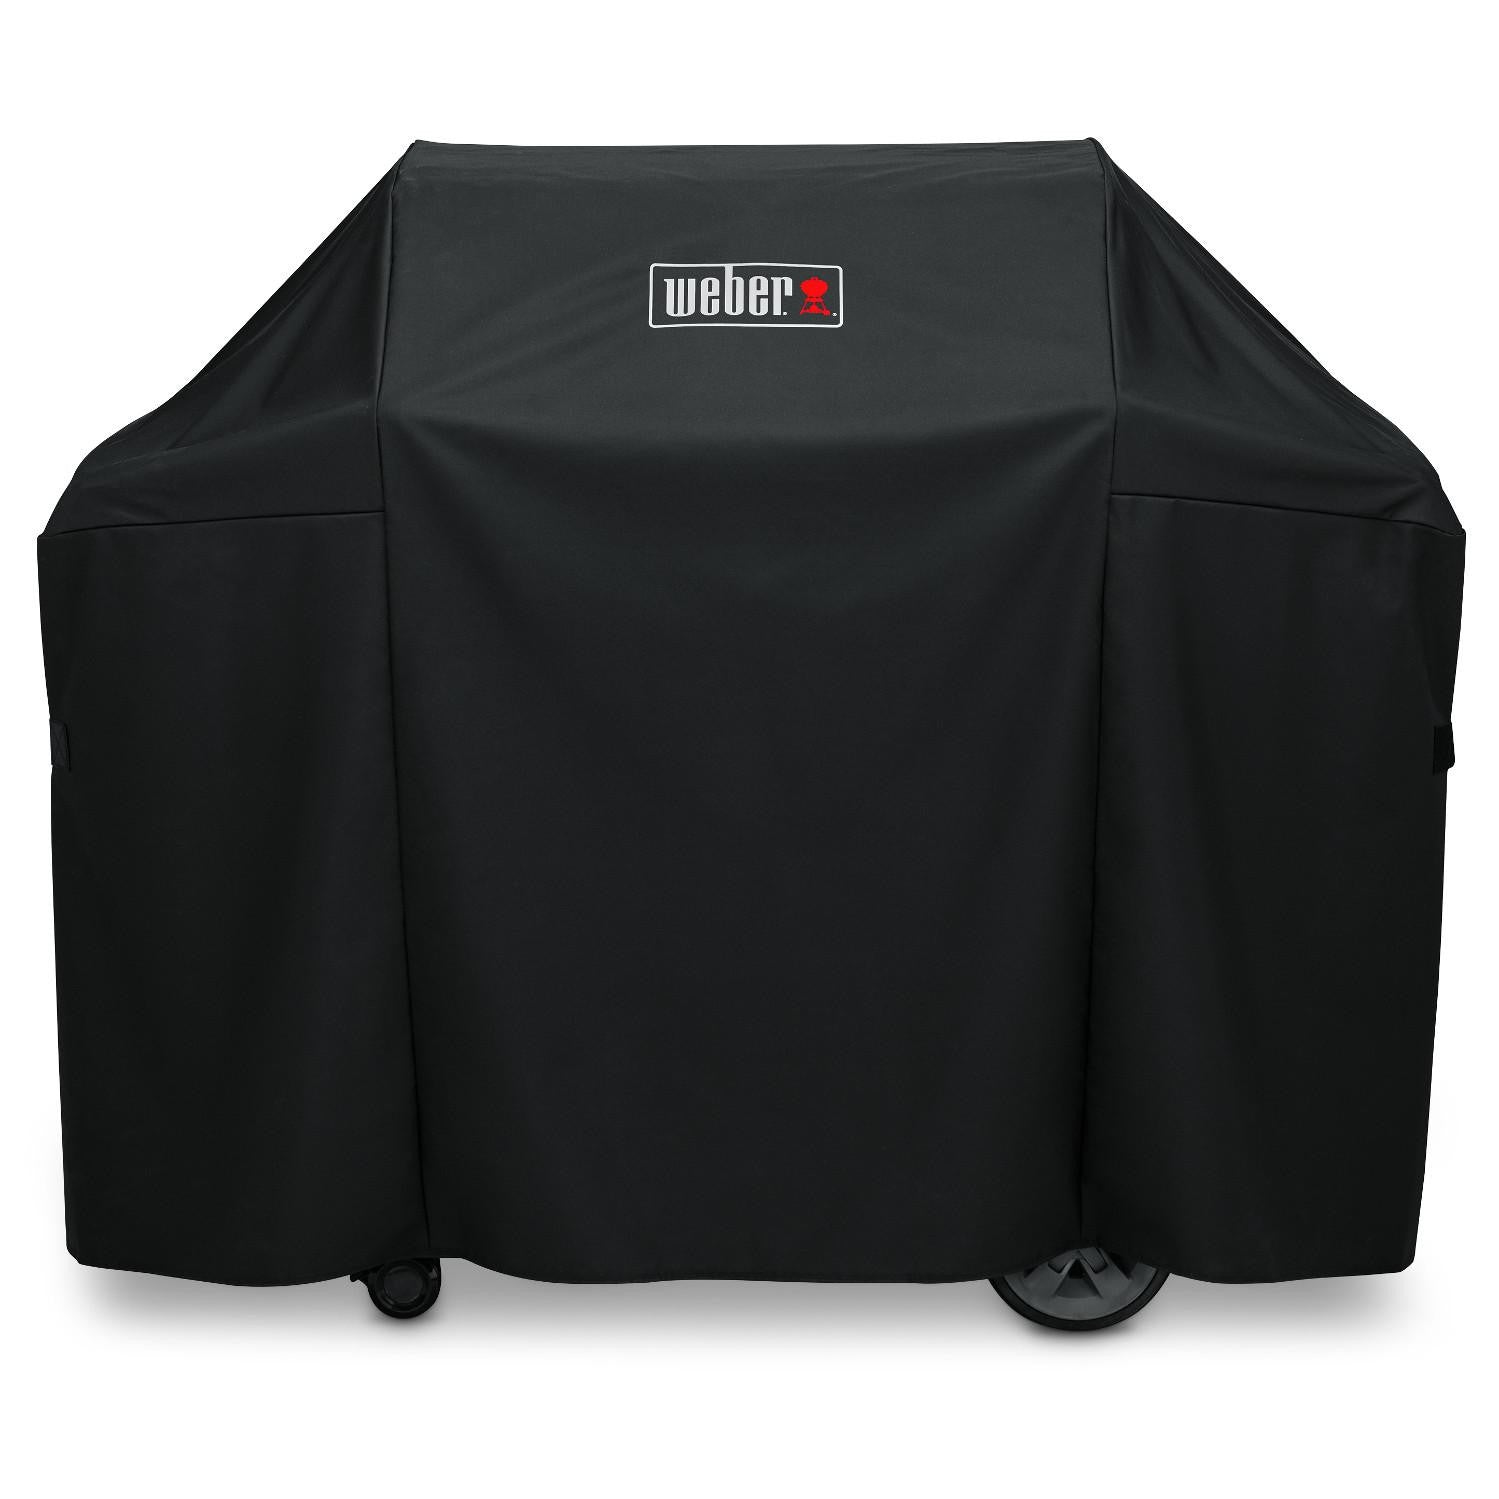 Weber 7130 Premium Polyester Genesis II 3B Grill Cover